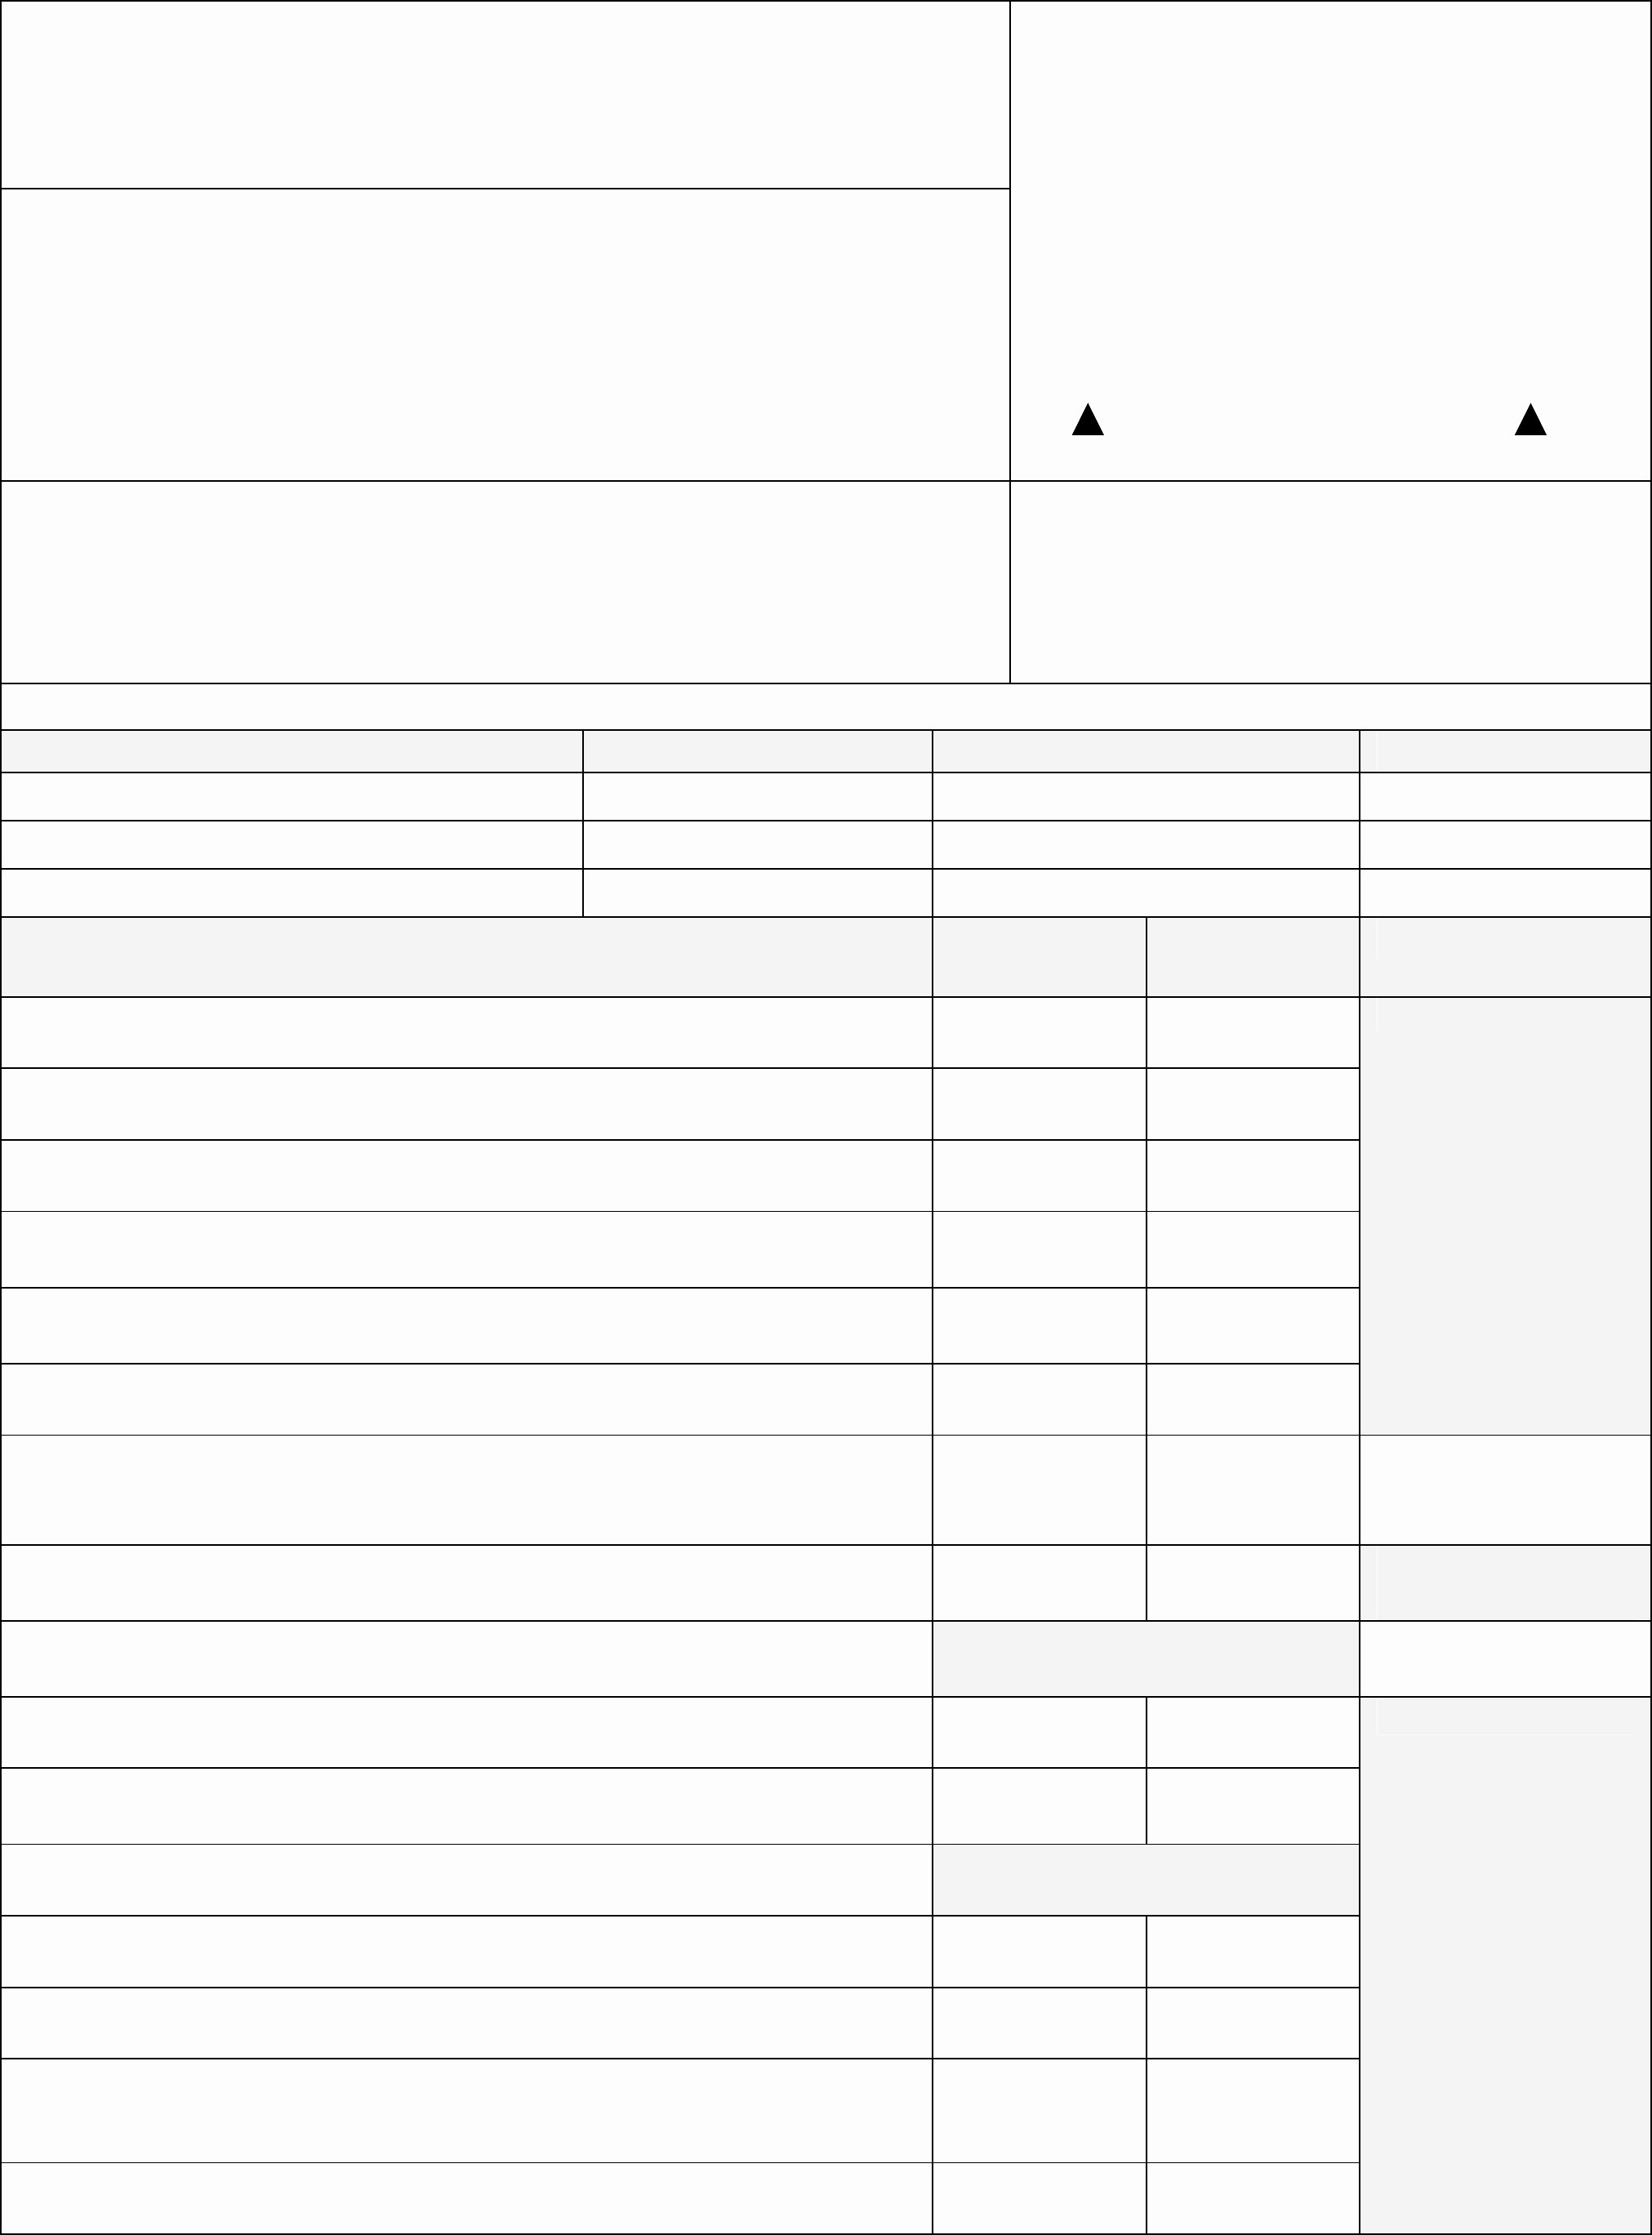 Child Support Wo Kansas Child Support Worksheet For Volume Of A Together With Volume Of A Cylinder Worksheet